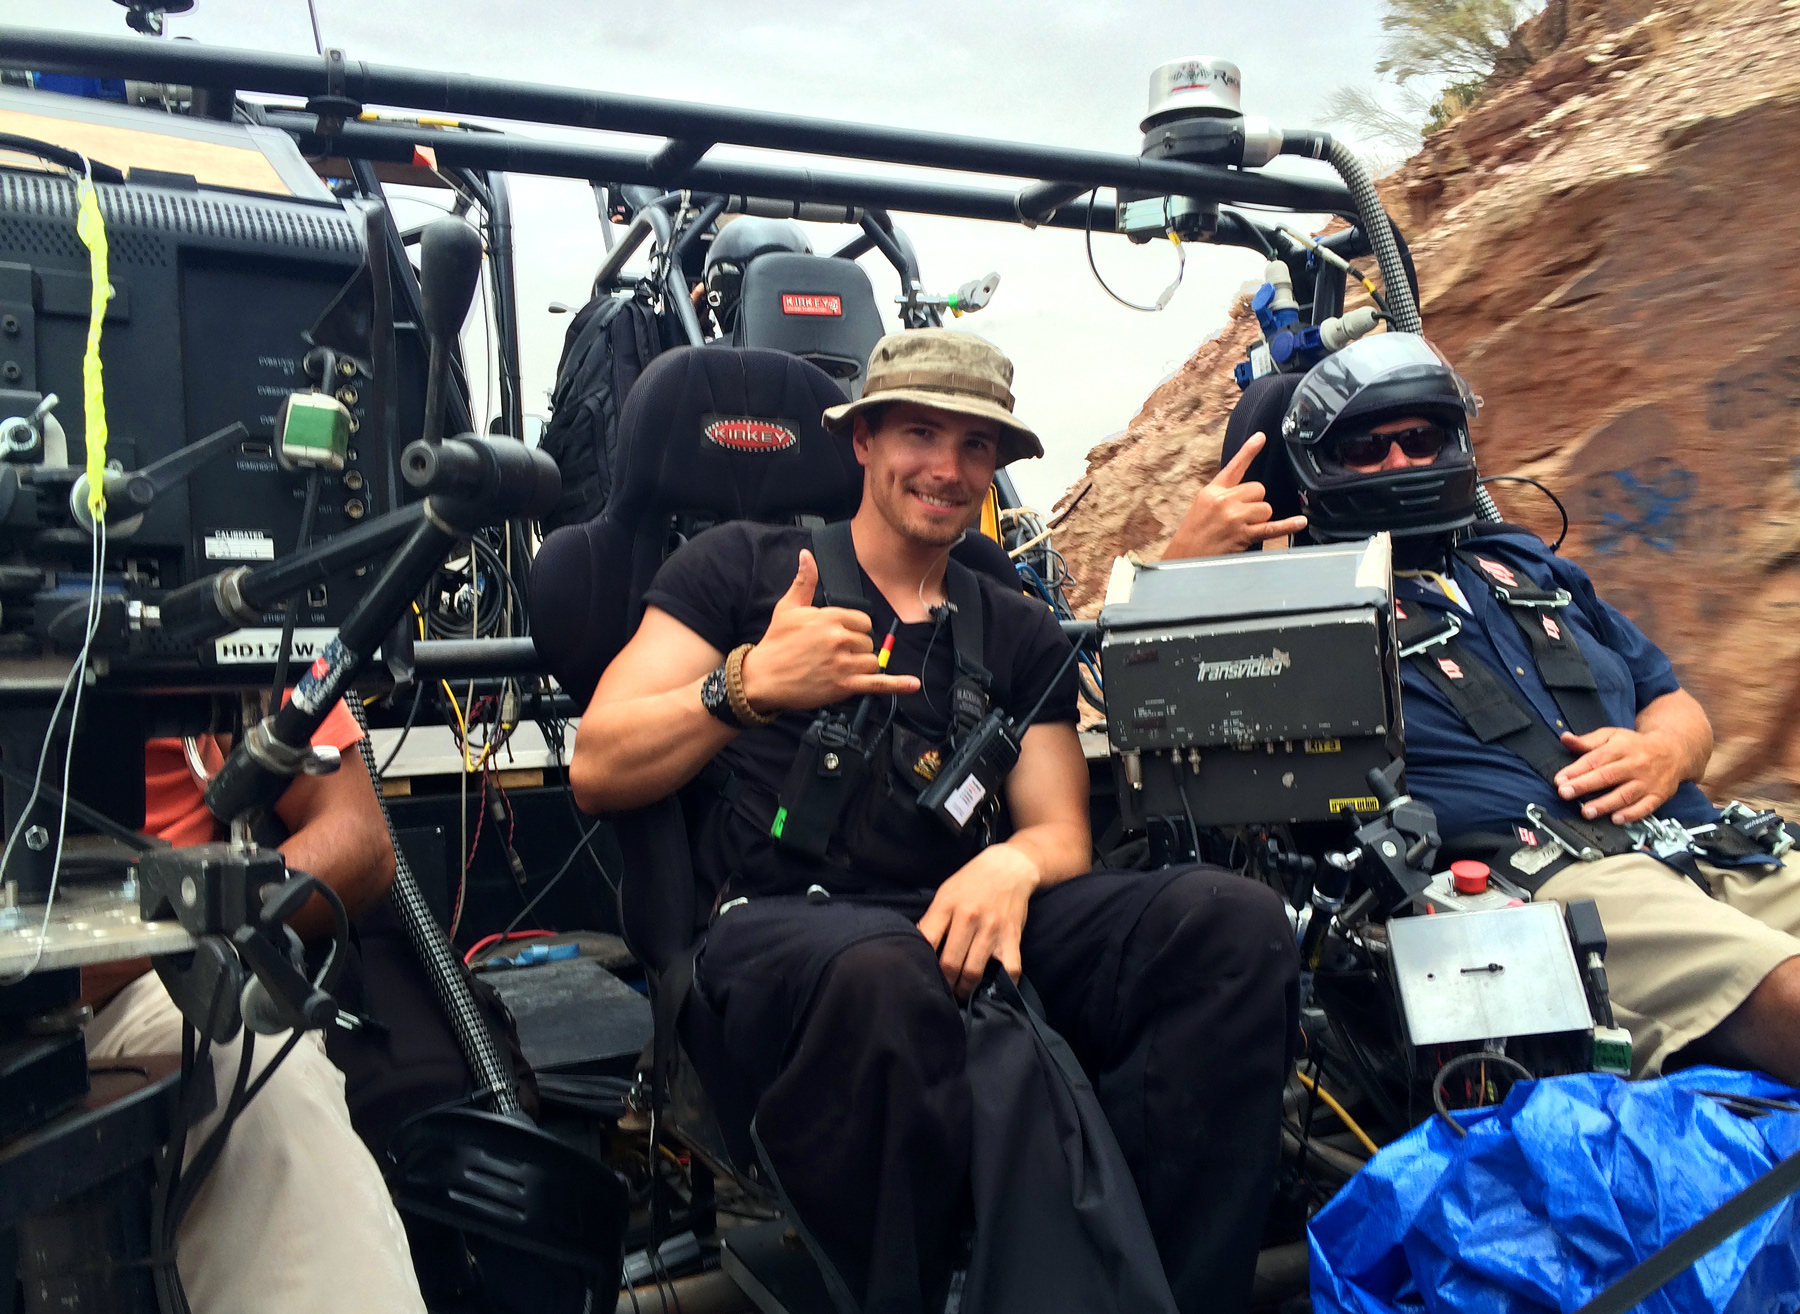 MG-Action, Martin Goeres, Mission Impossible 5, Stunt, Rigging, Safety, Marokko